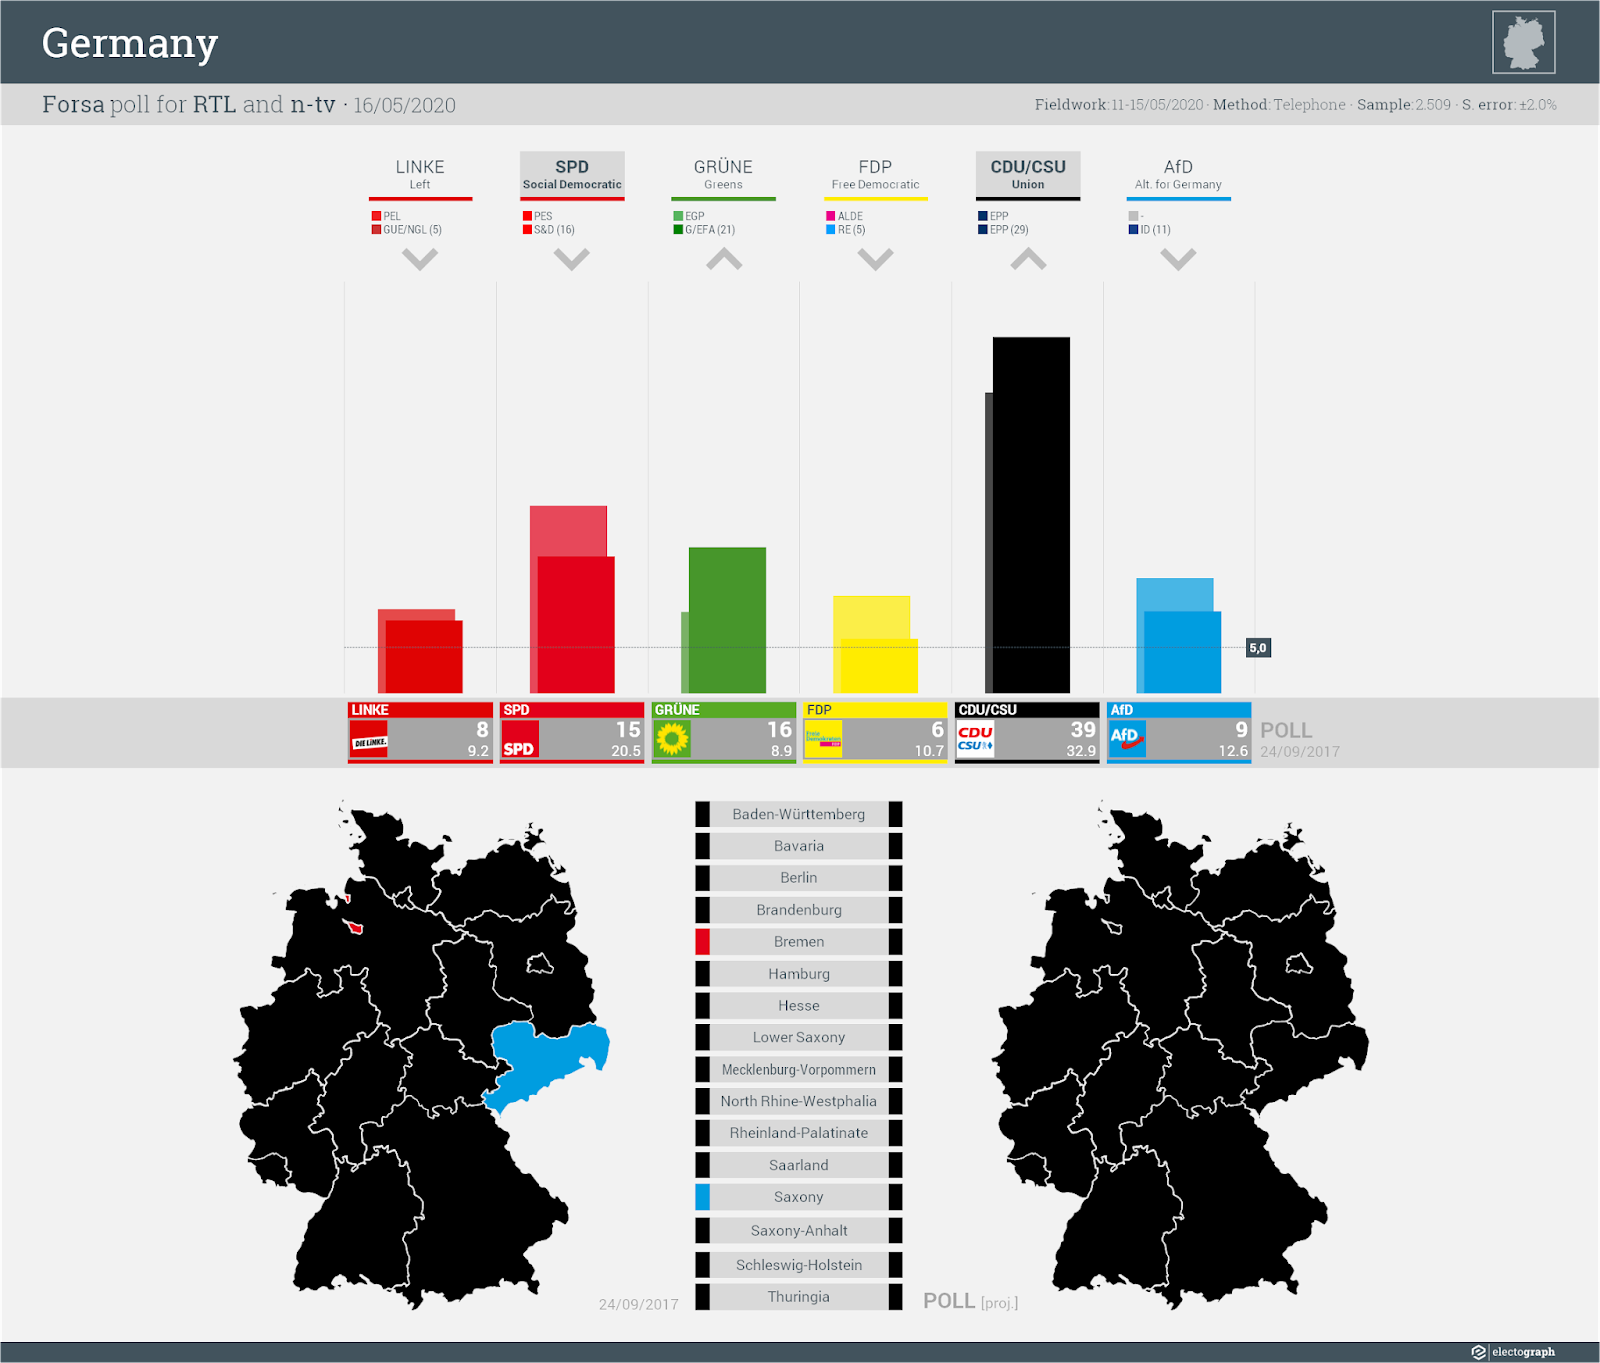 GERMANY: Forsa poll chart for RTL and n-tv, 16 May 2020